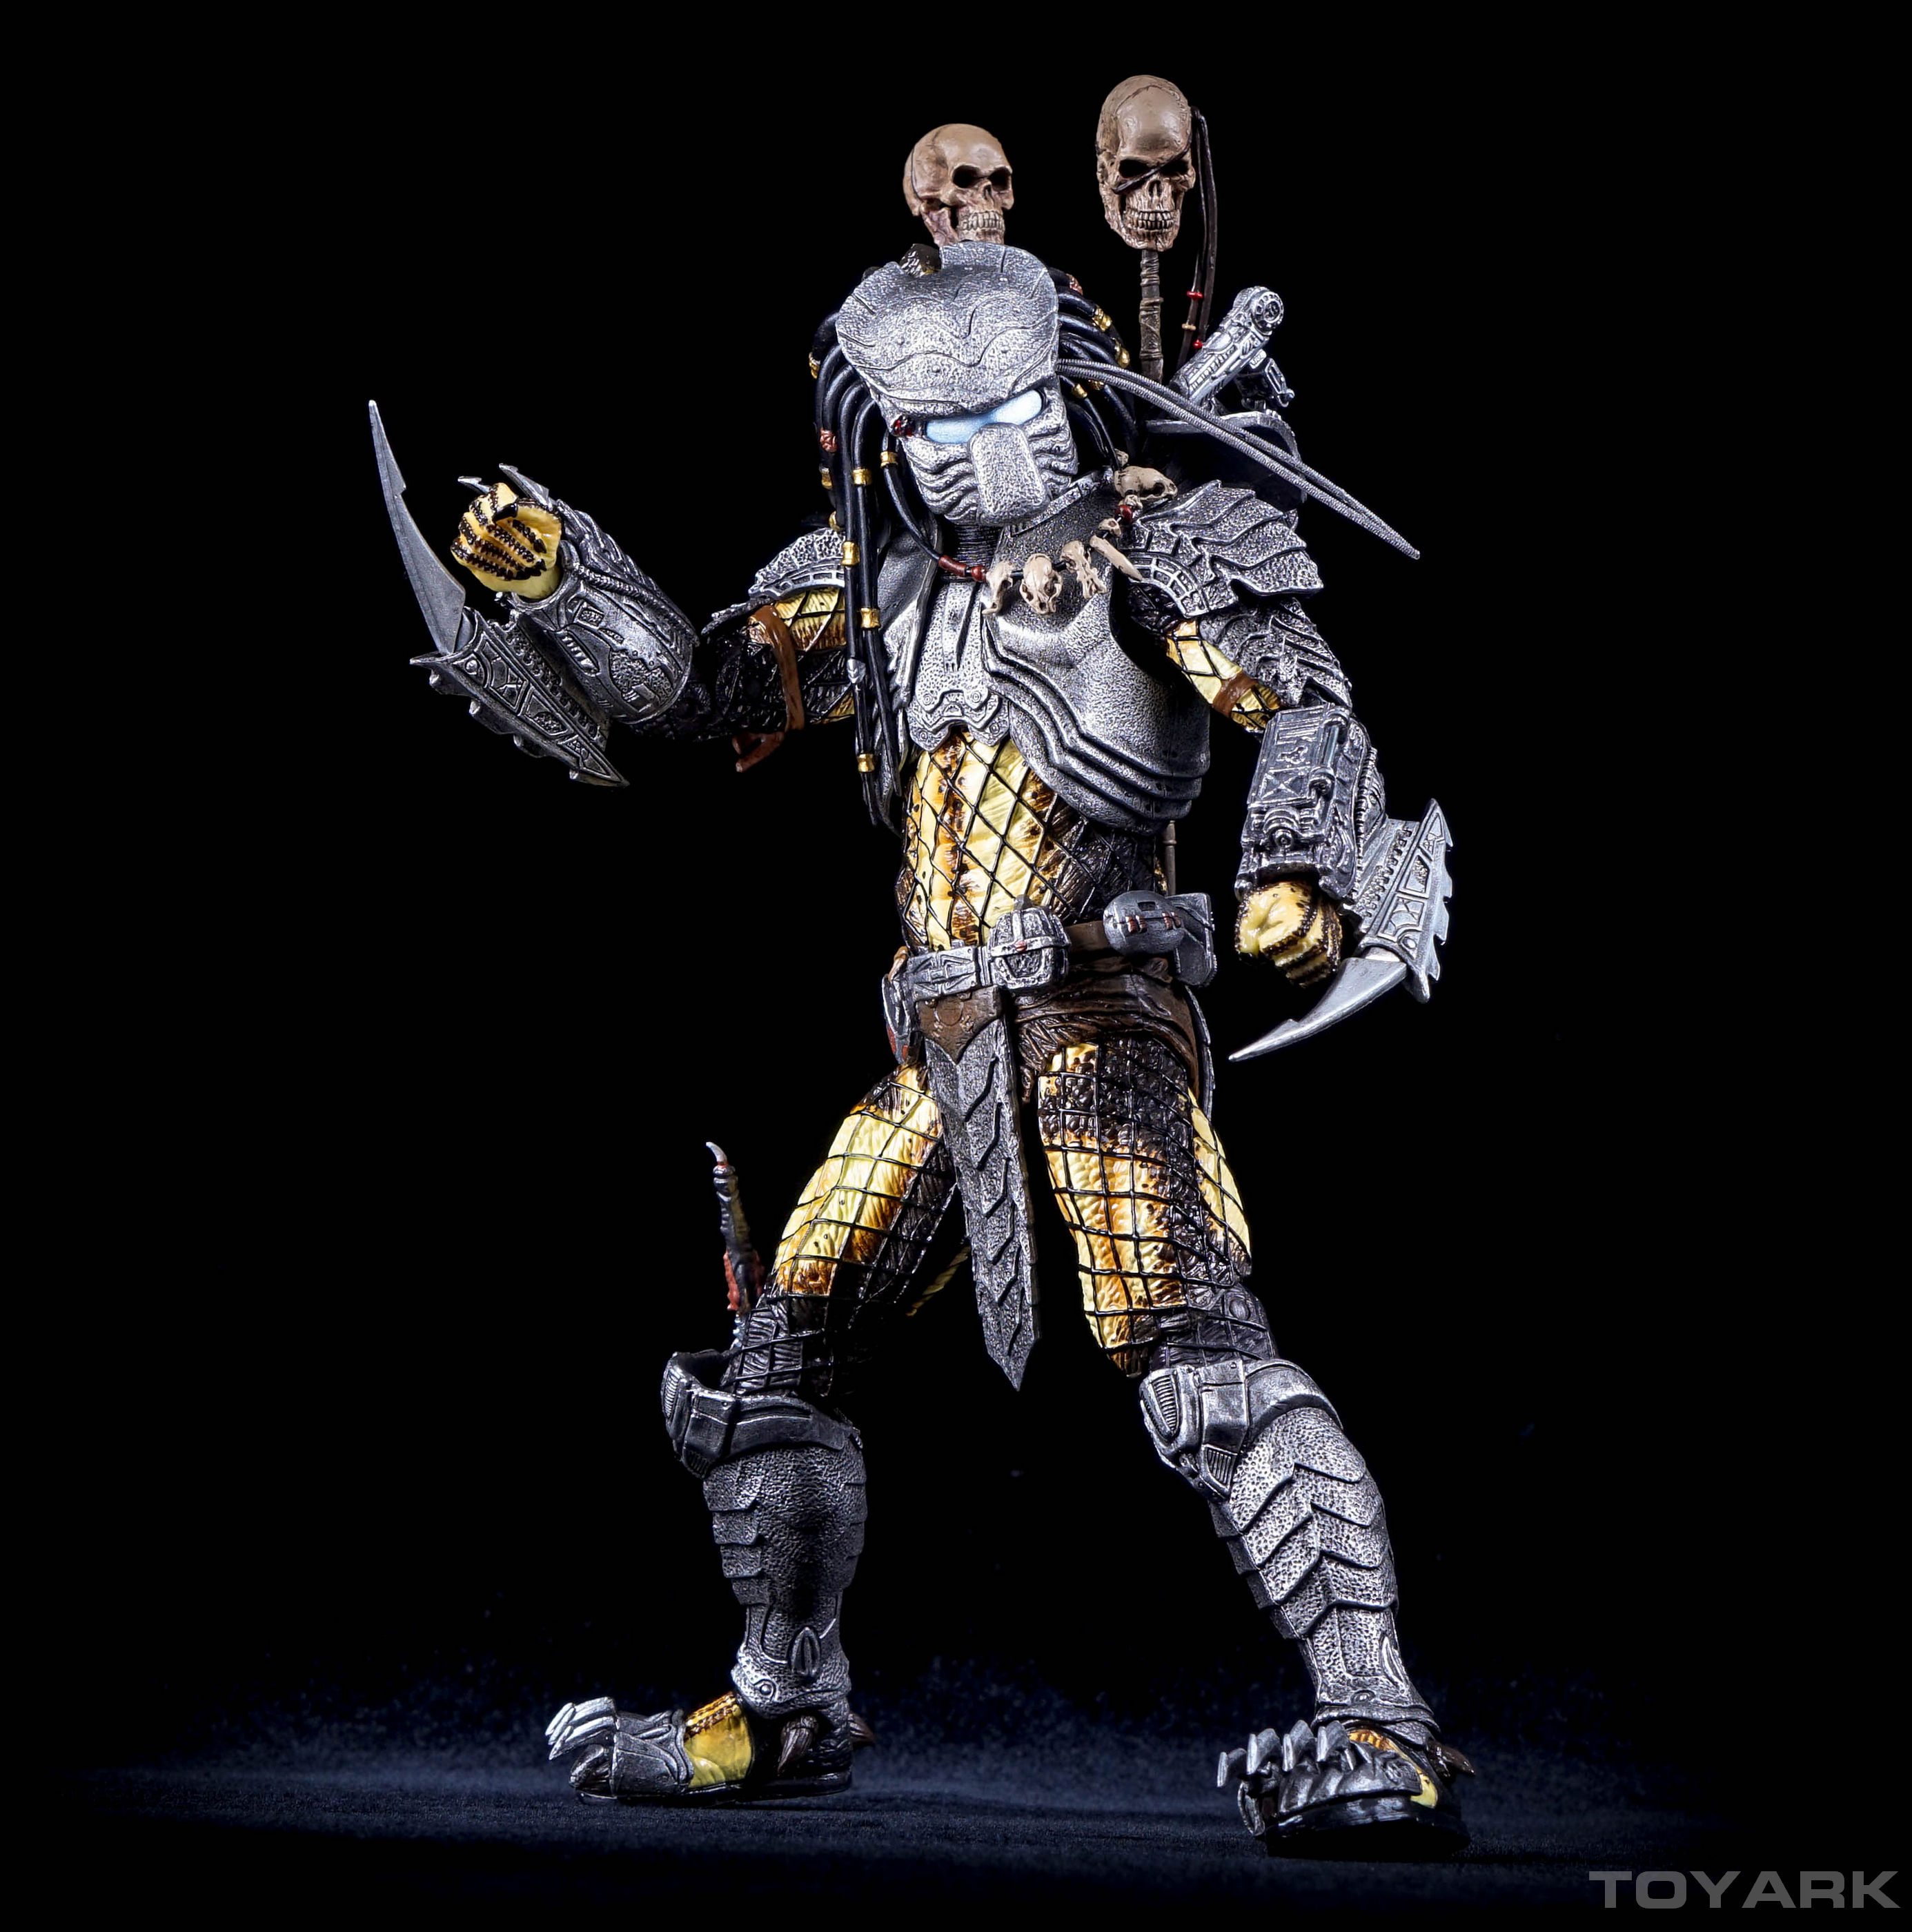 http://news.toyark.com/wp-content/uploads/sites/4/2015/12/NECA-AvP-Chopper-Predator-011.jpg